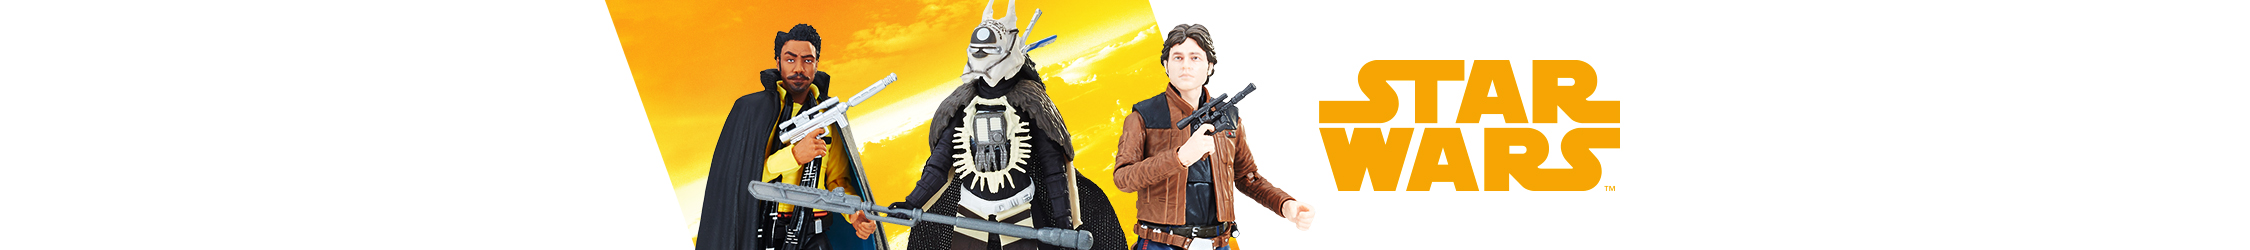 Star Wars Action Figures, Toys, & Collectibles